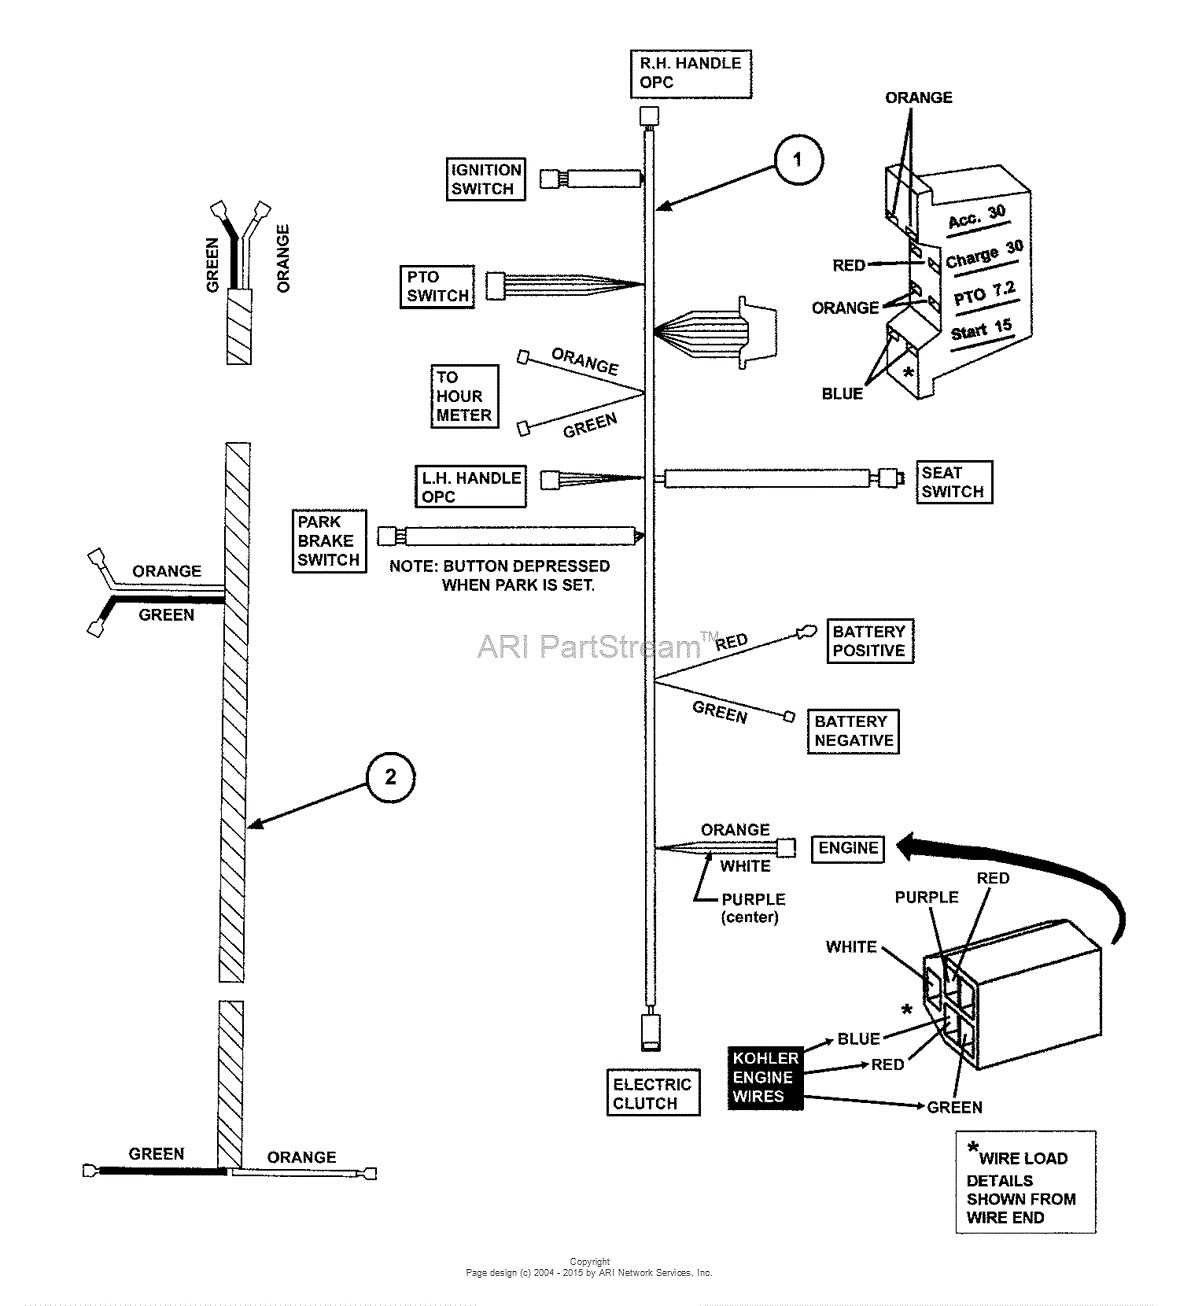 25 Hp Kohler Engine Wiring Schematic